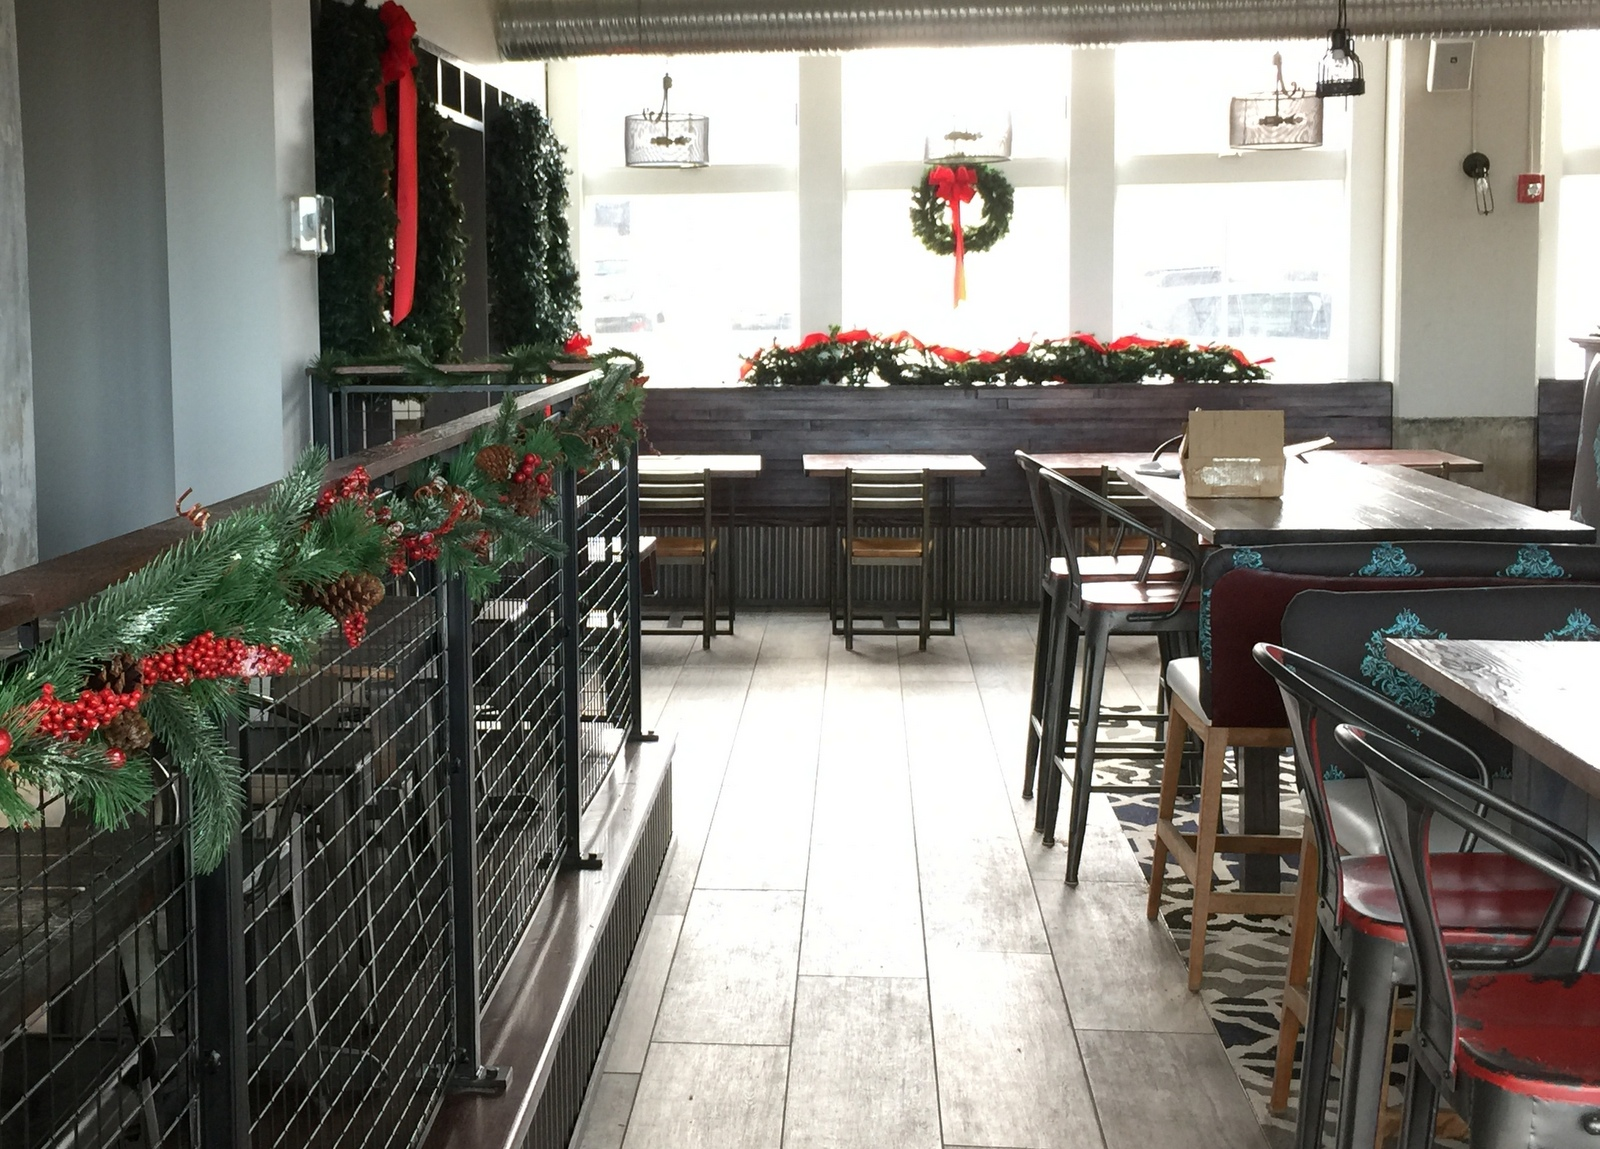 Christmas Eve is expected to be the first lunch service at Roost. (Andrew Galarneau/Buffalo News)